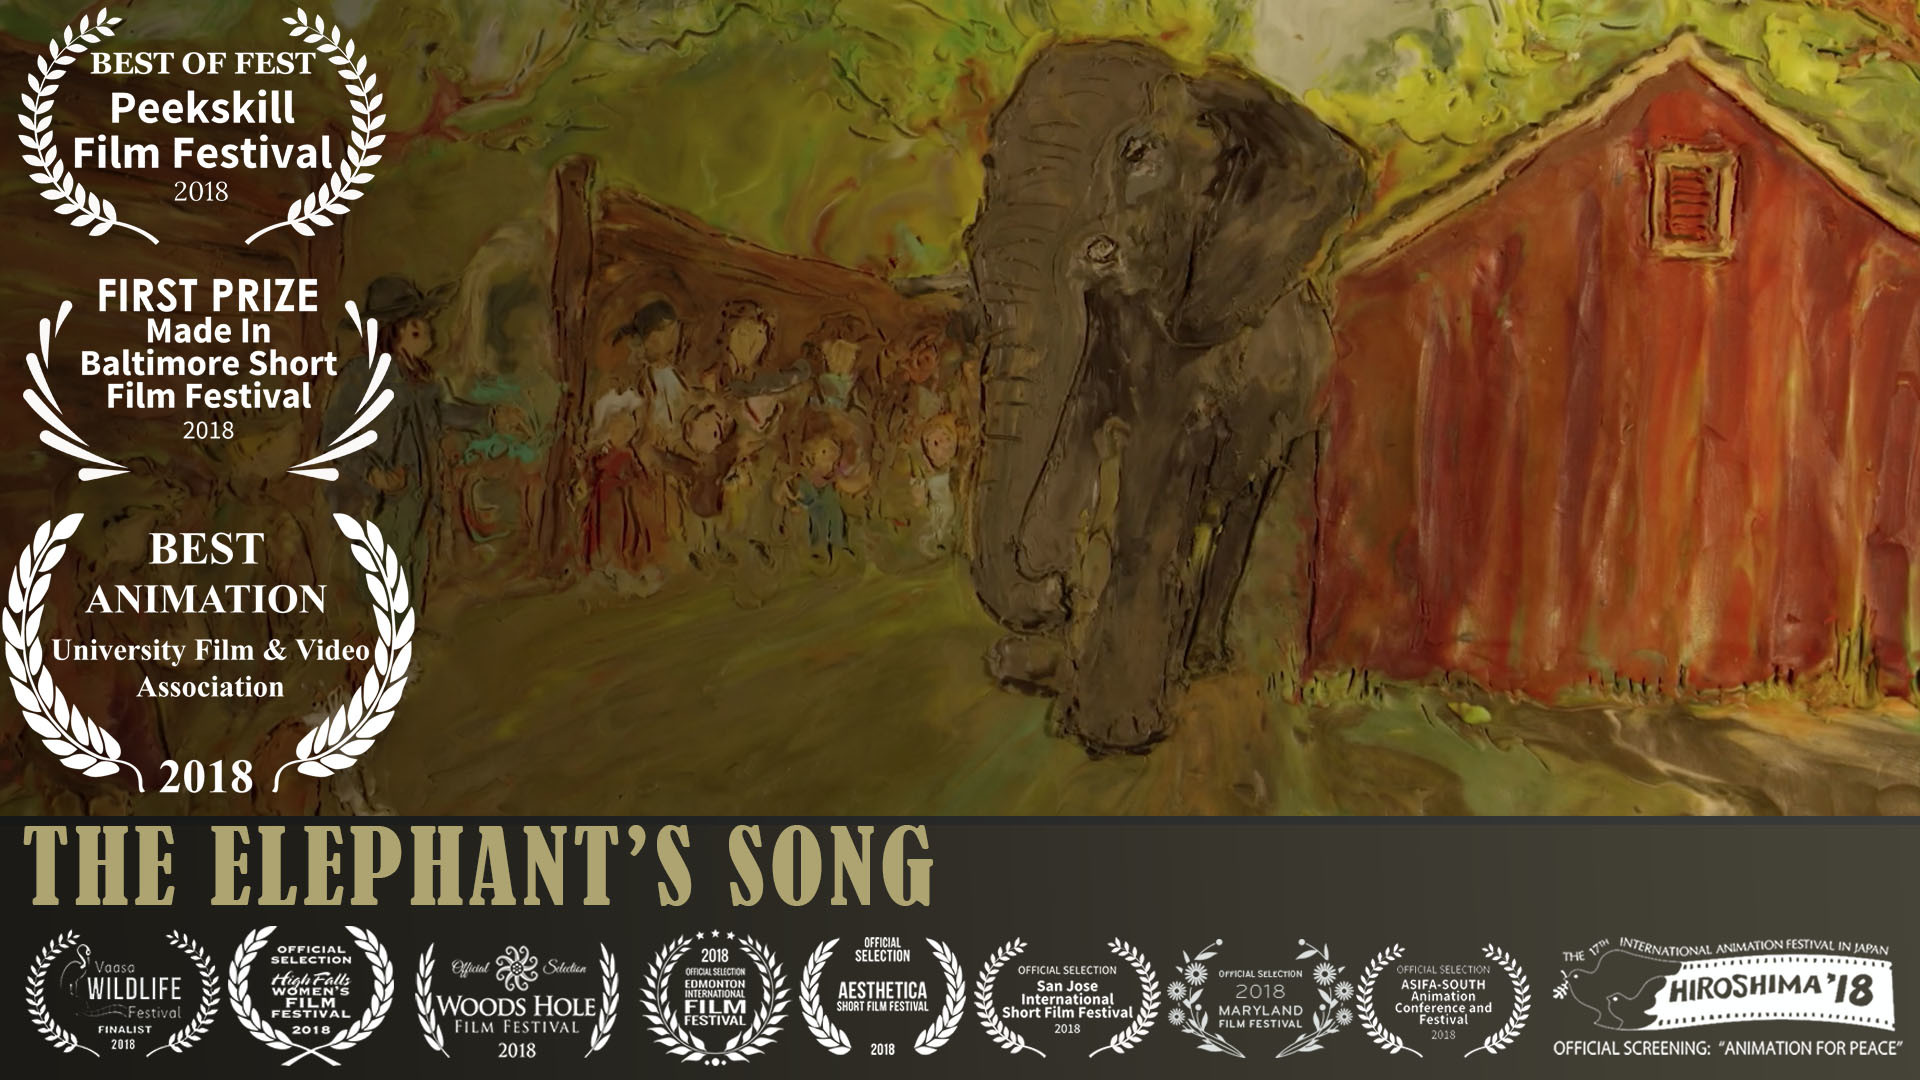 The Elephant's Song - FilmFreeway